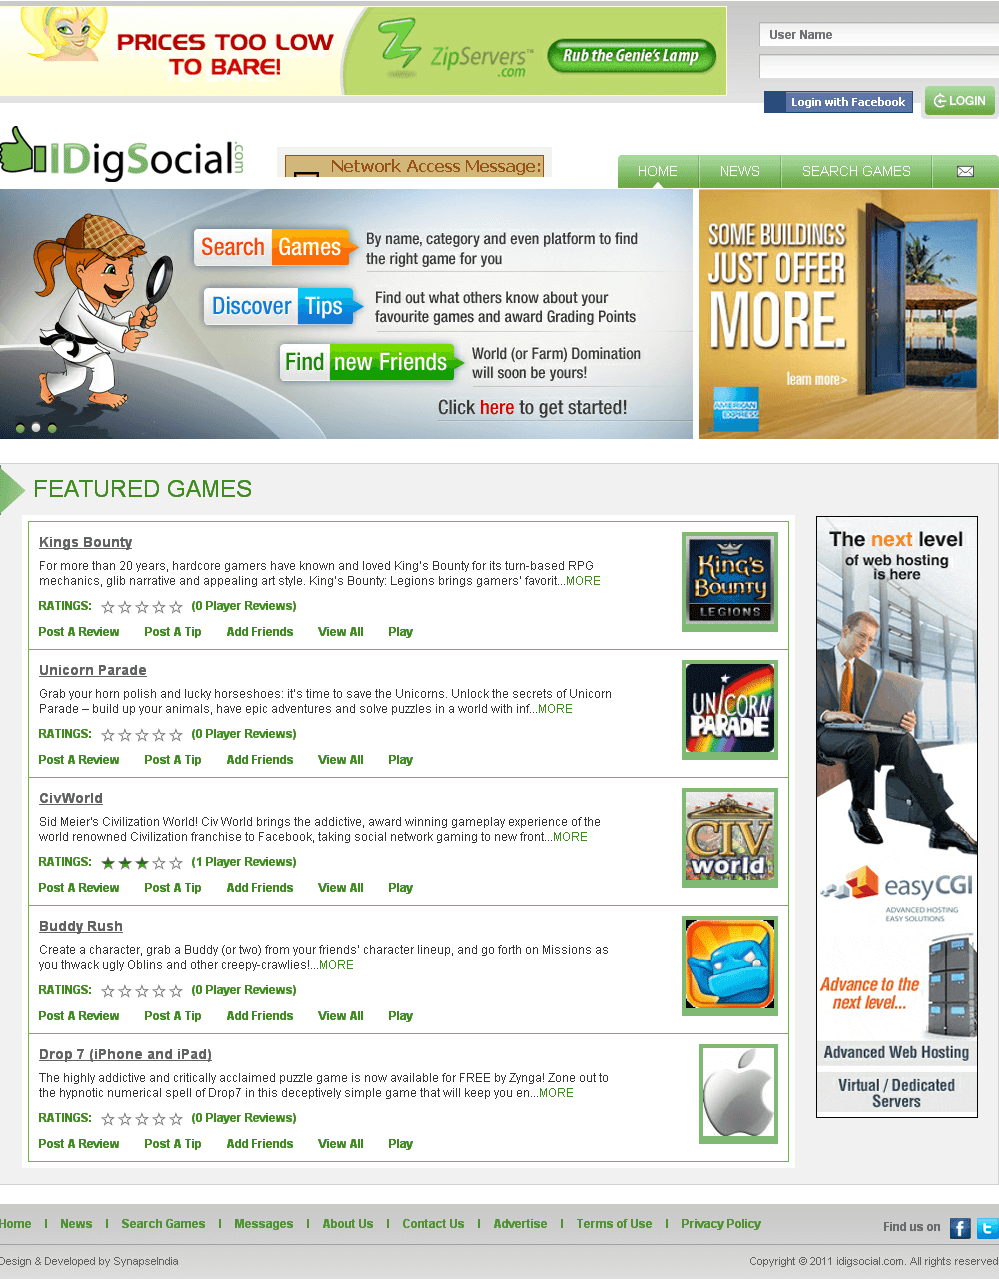 Website Whereby Users Can Review a Game and Rate Them